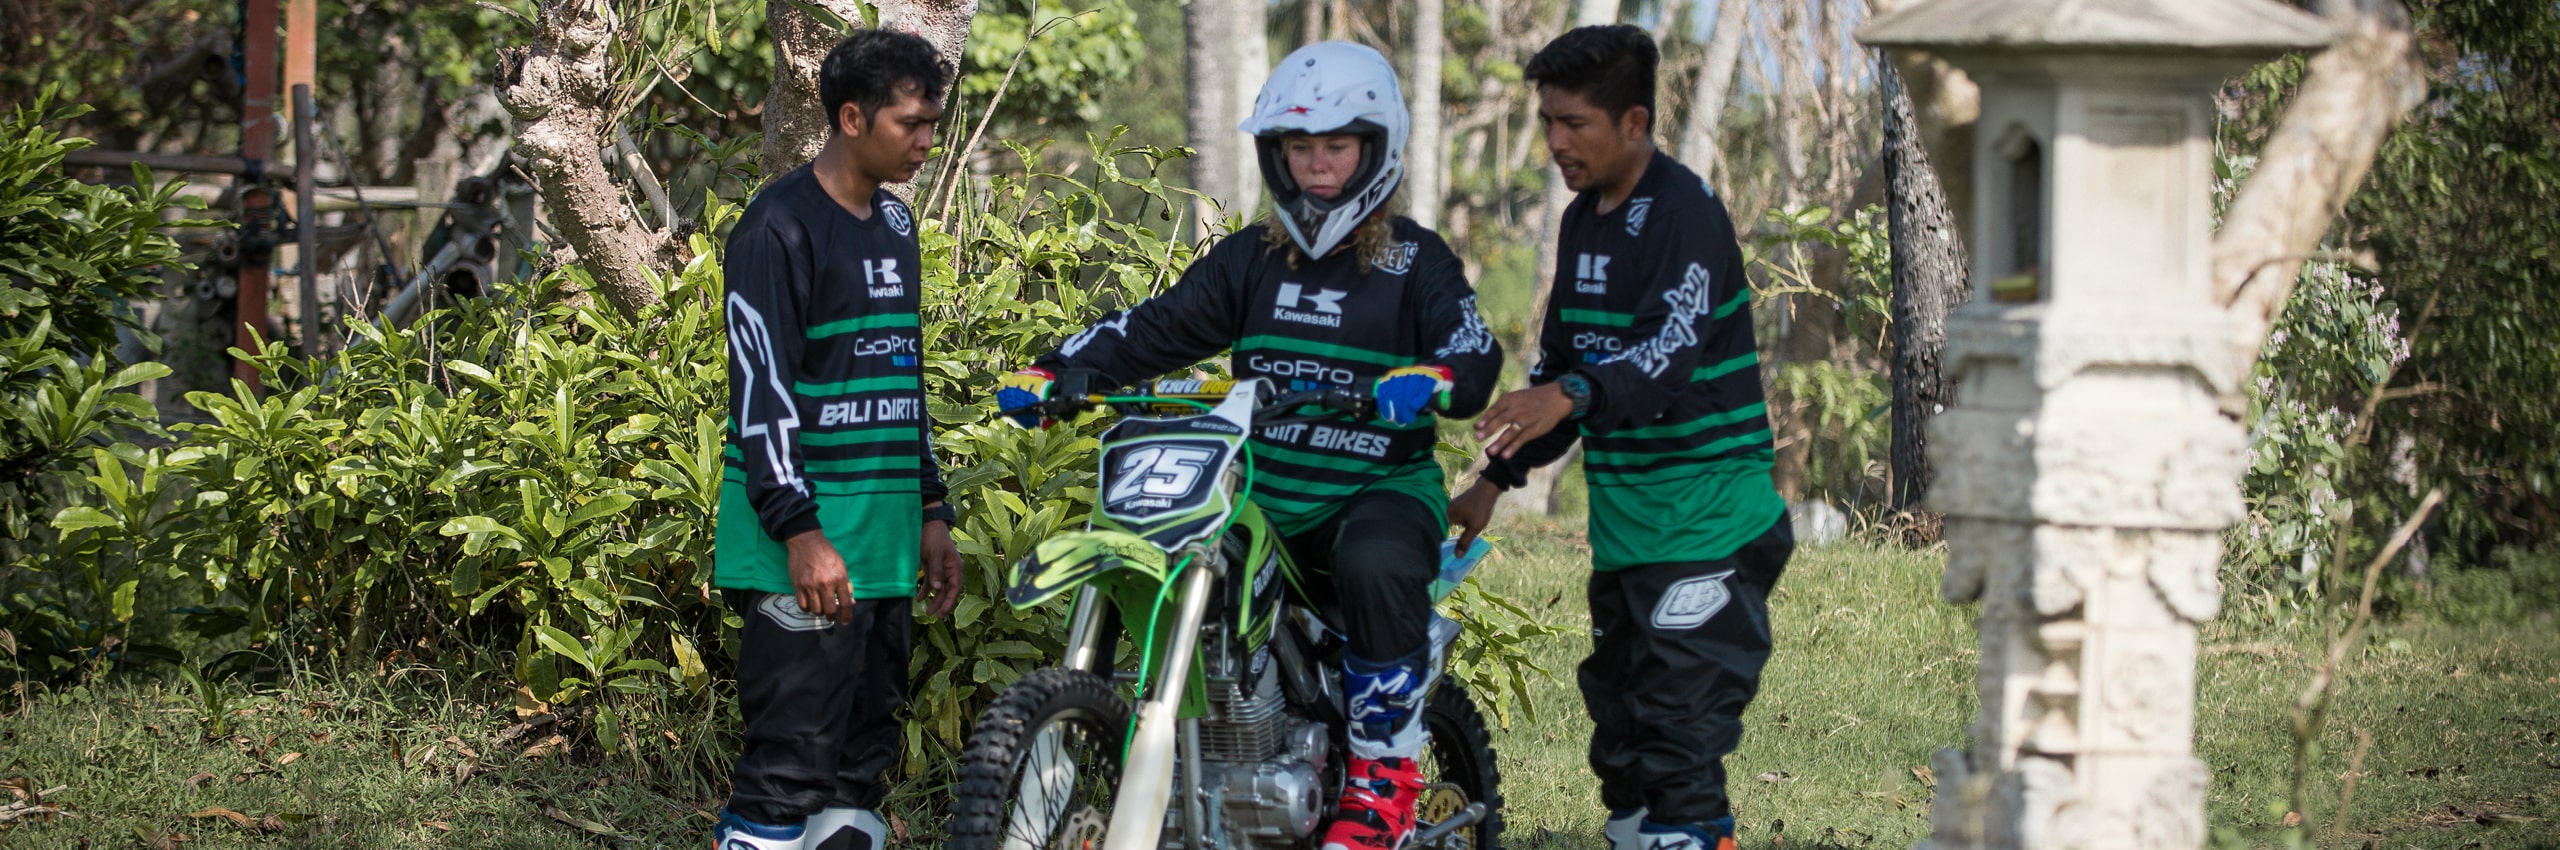 Bali_Dirt_Bikes_Learn_to_ride_Slider2